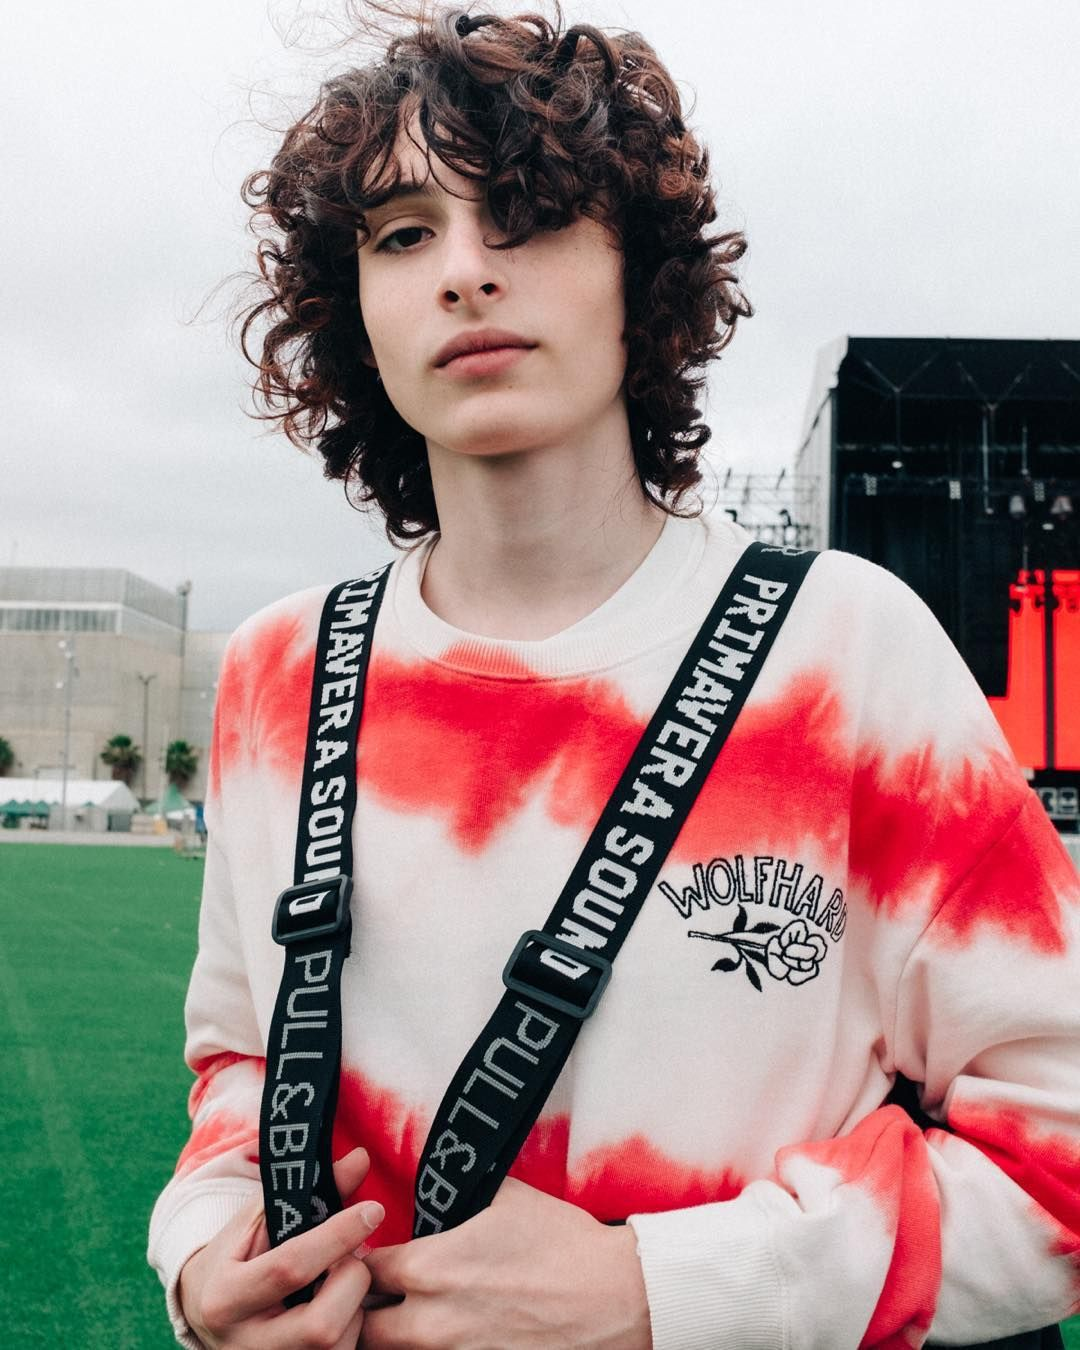 Image may contain:  Stranger Things cast ages, Stranger Things, 3, cast, age, old, birthday, Finn Wolfhard, Mike, Clothing, Sleeve, Apparel, Musical Instrument, Musician, Person, Human